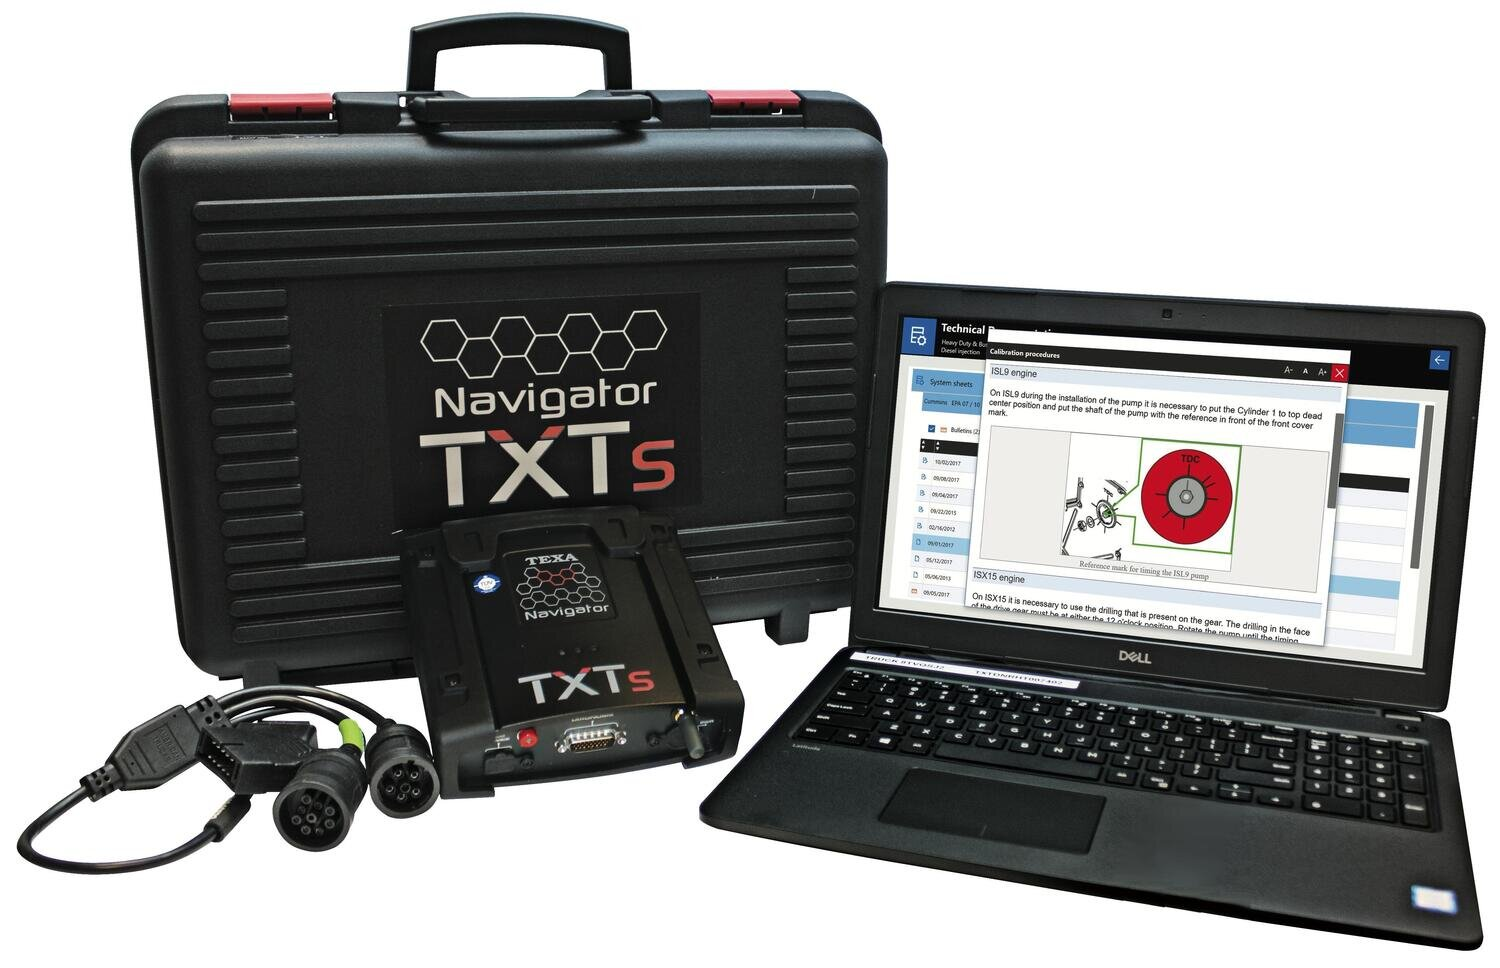 TEXTTWPC - TEXA Truck with PC